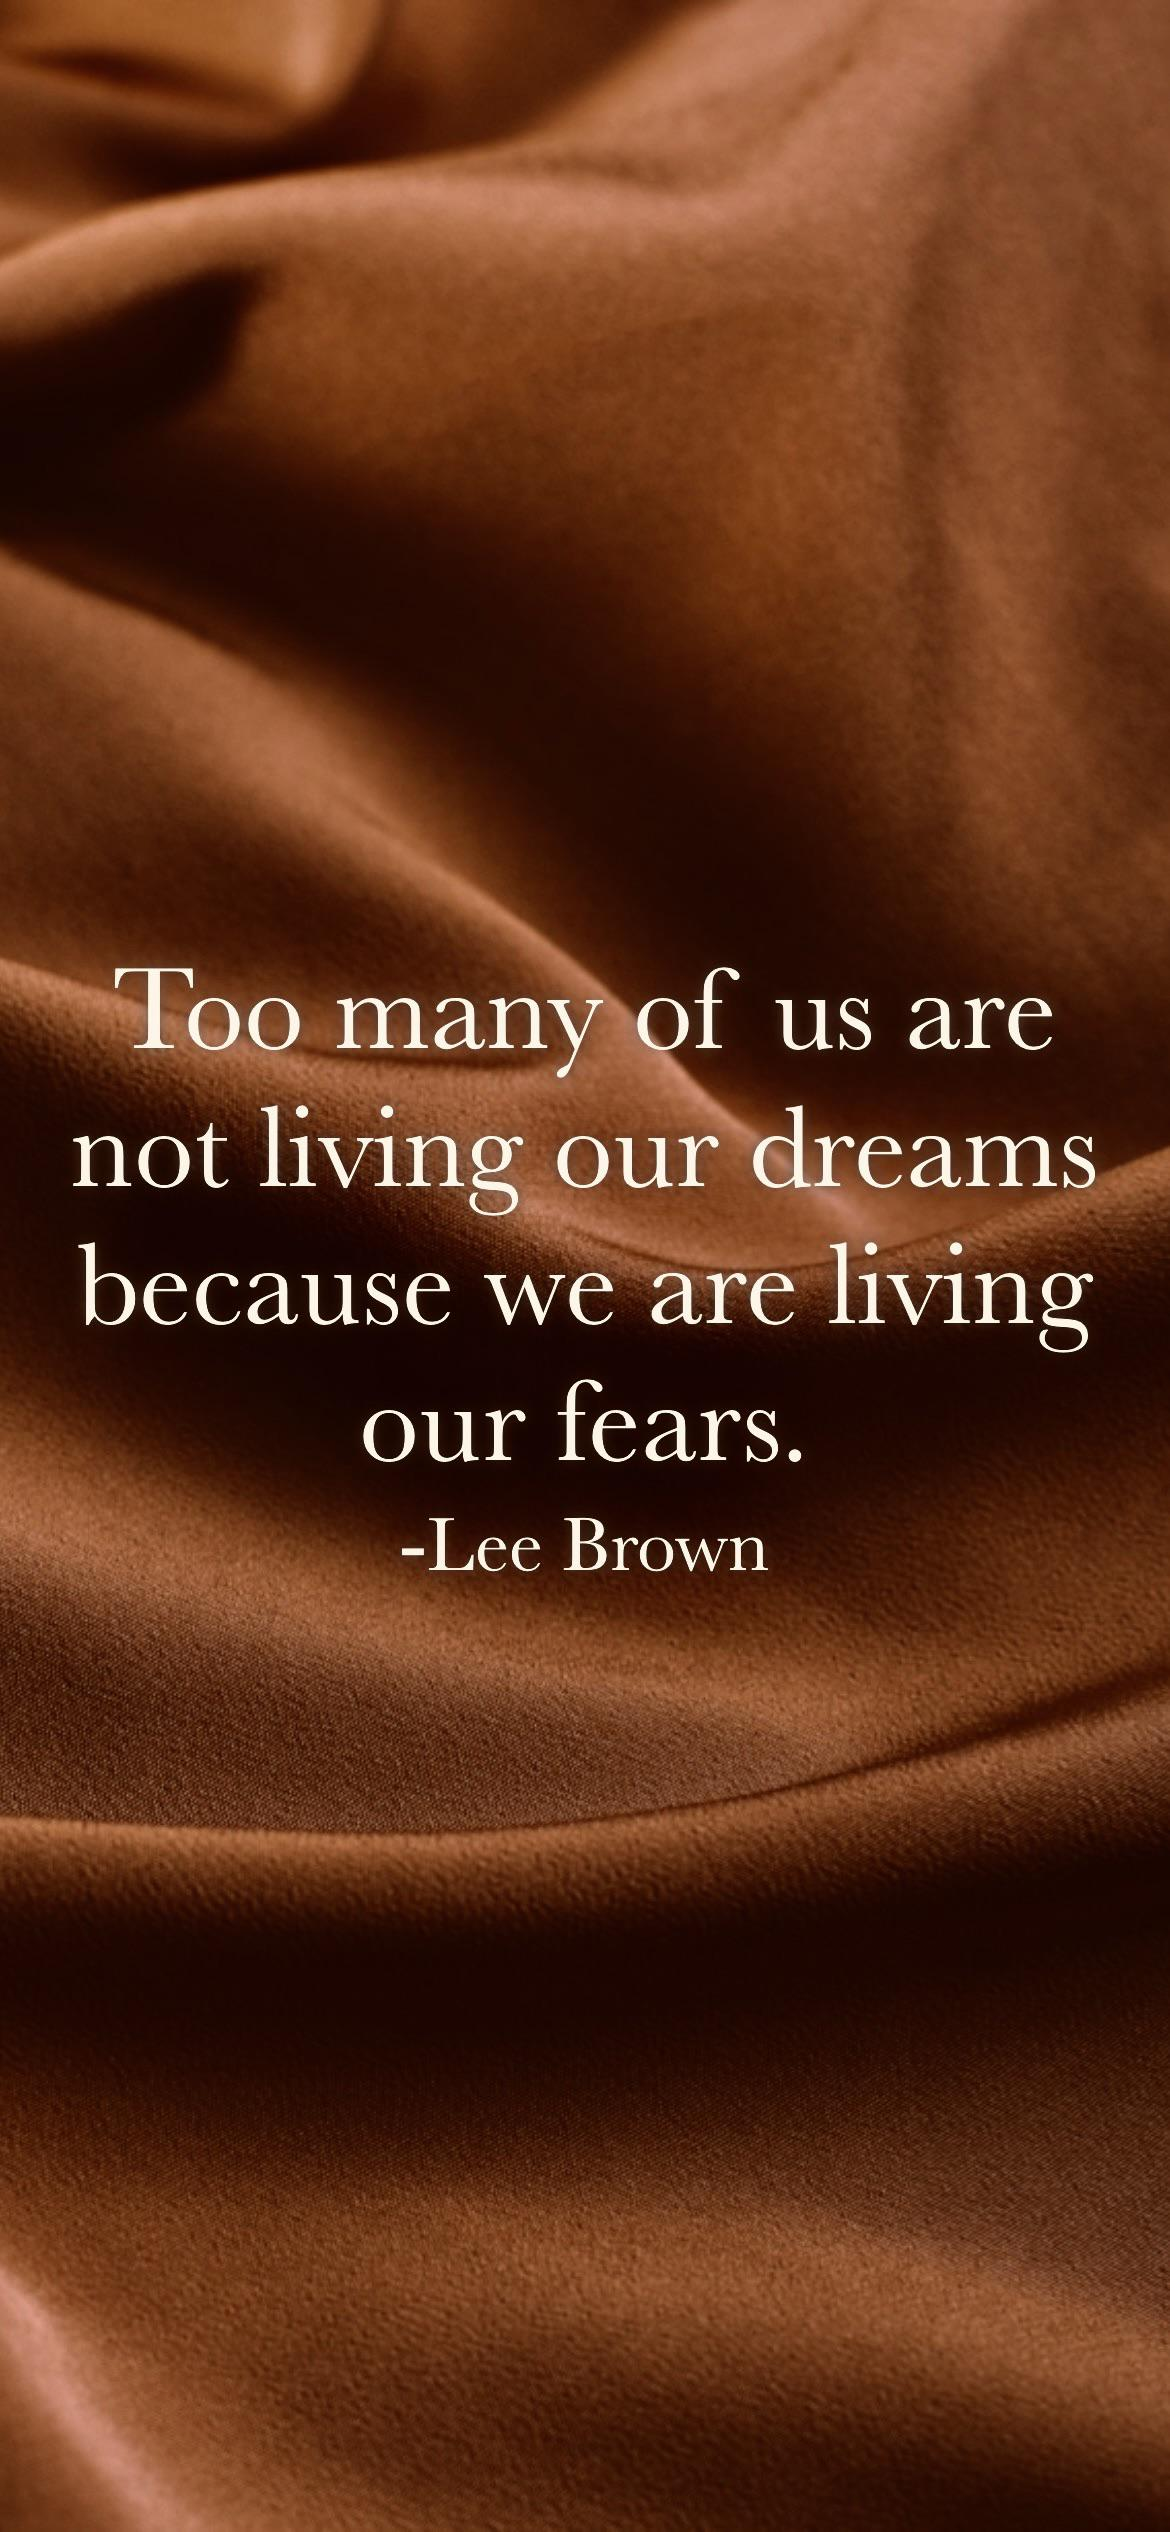 Too many of us are not living our dreams because we are living our fears. -Lee Brown [2532 x 1170p]